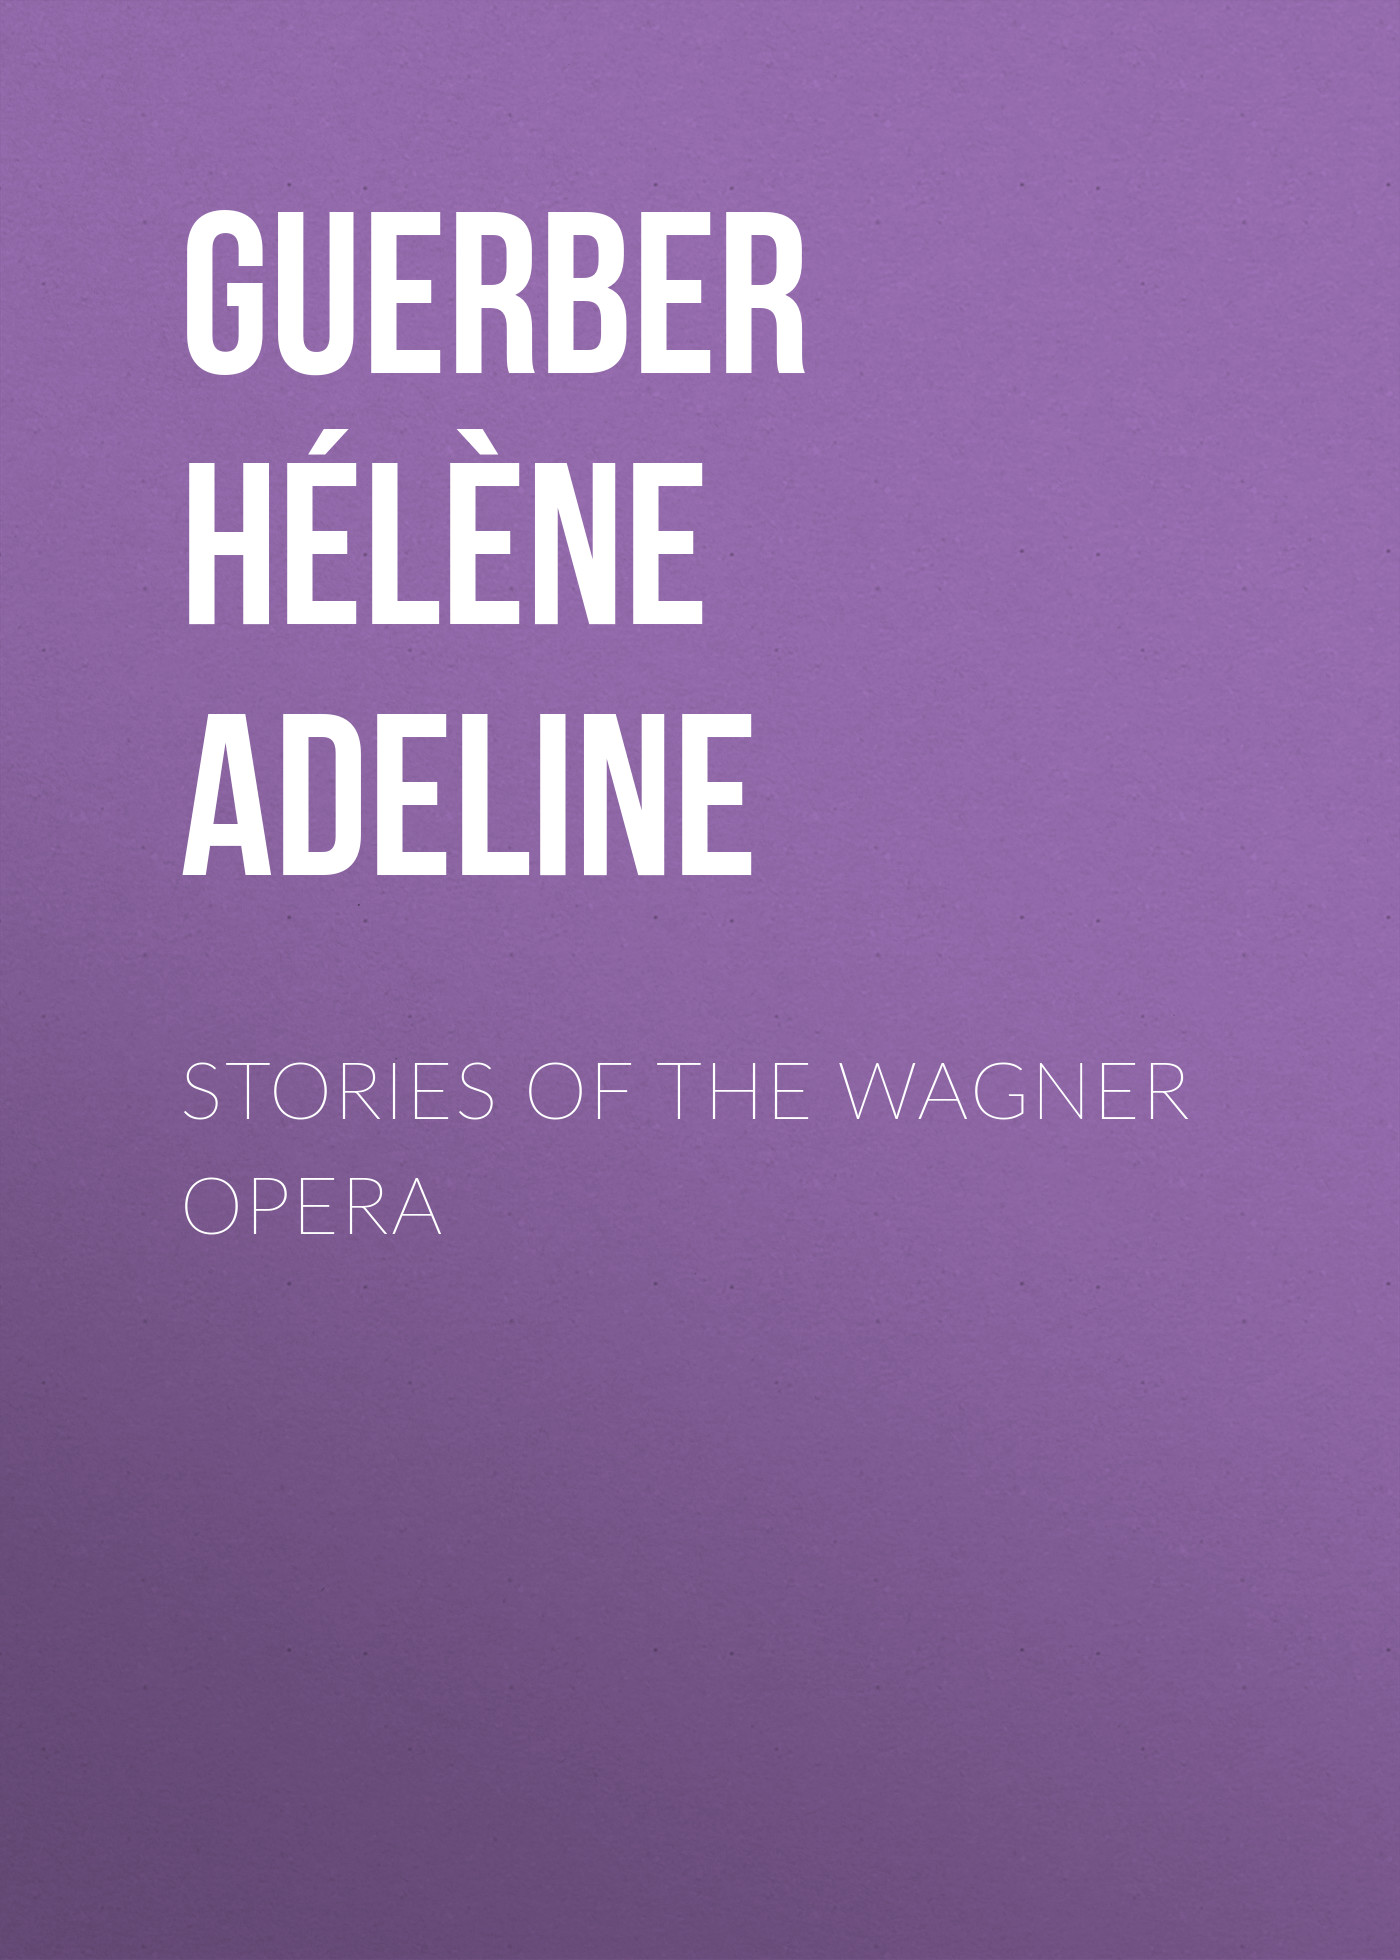 Guerber Hélène Adeline Stories of the Wagner Opera mabel wagnalls stars of the opera